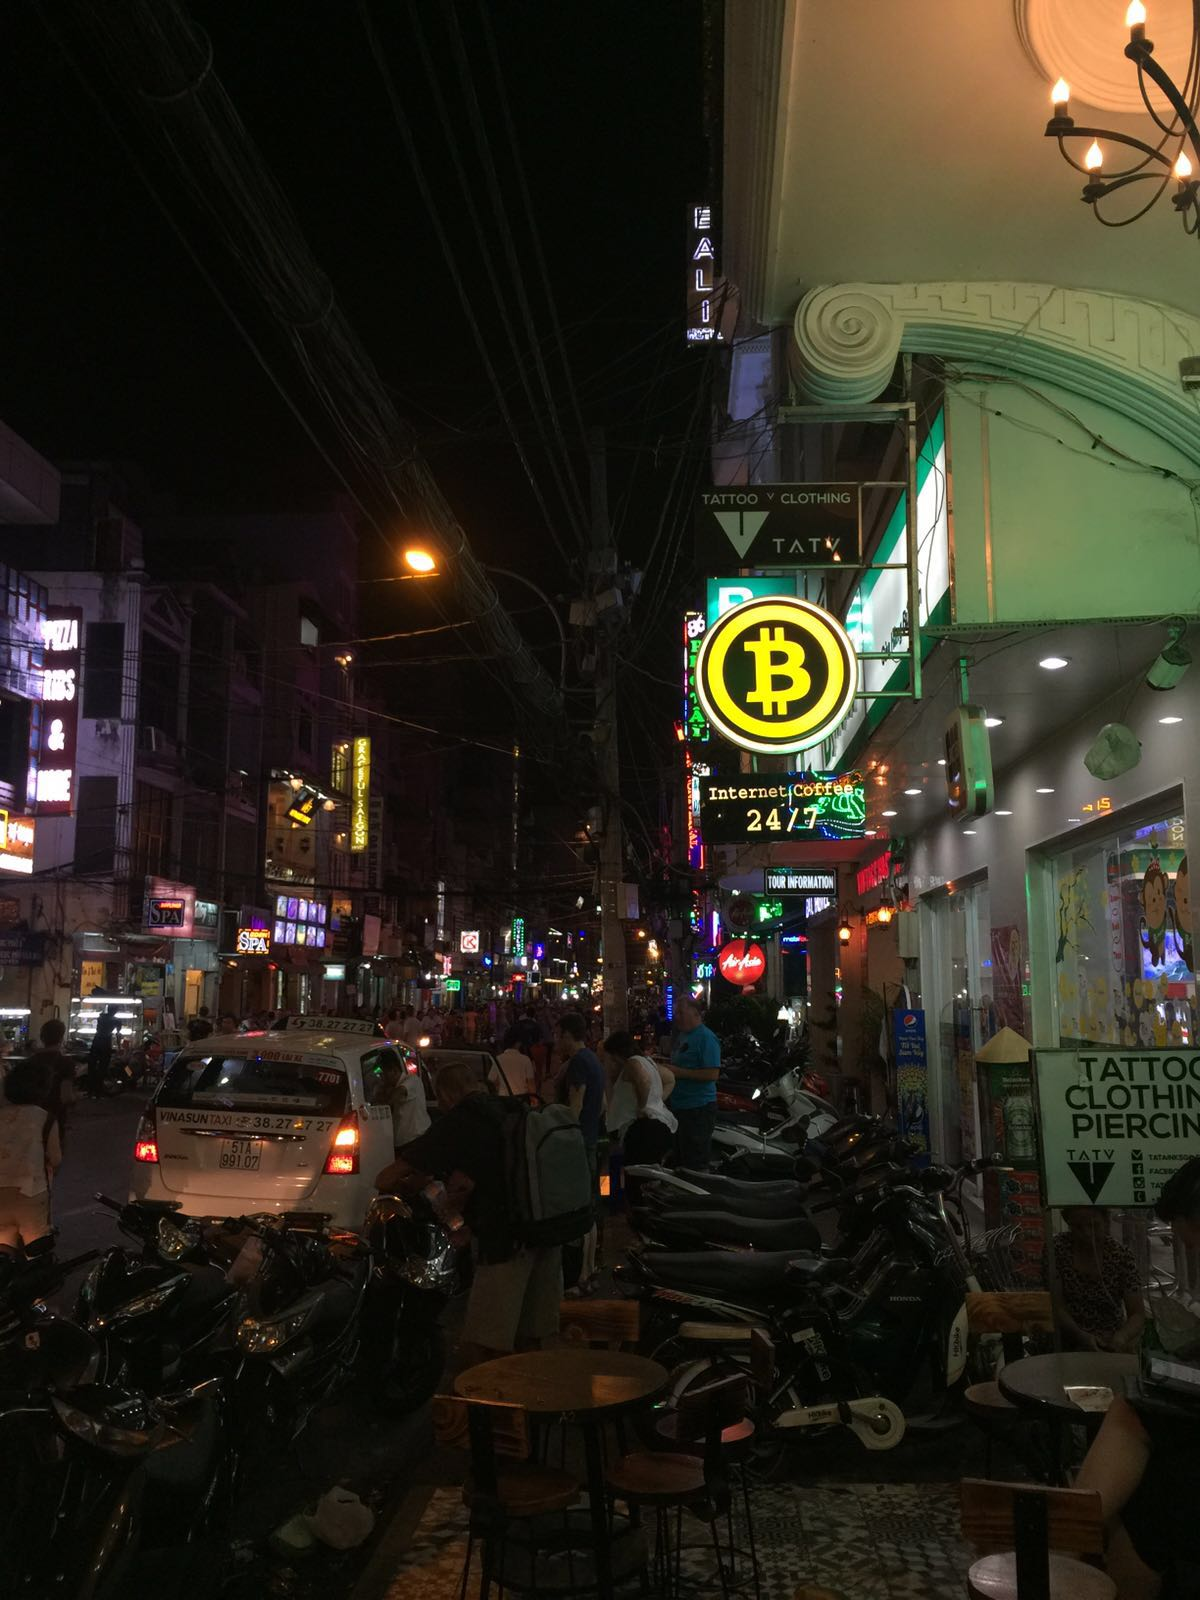 Bitcoin Sign in Vietnam